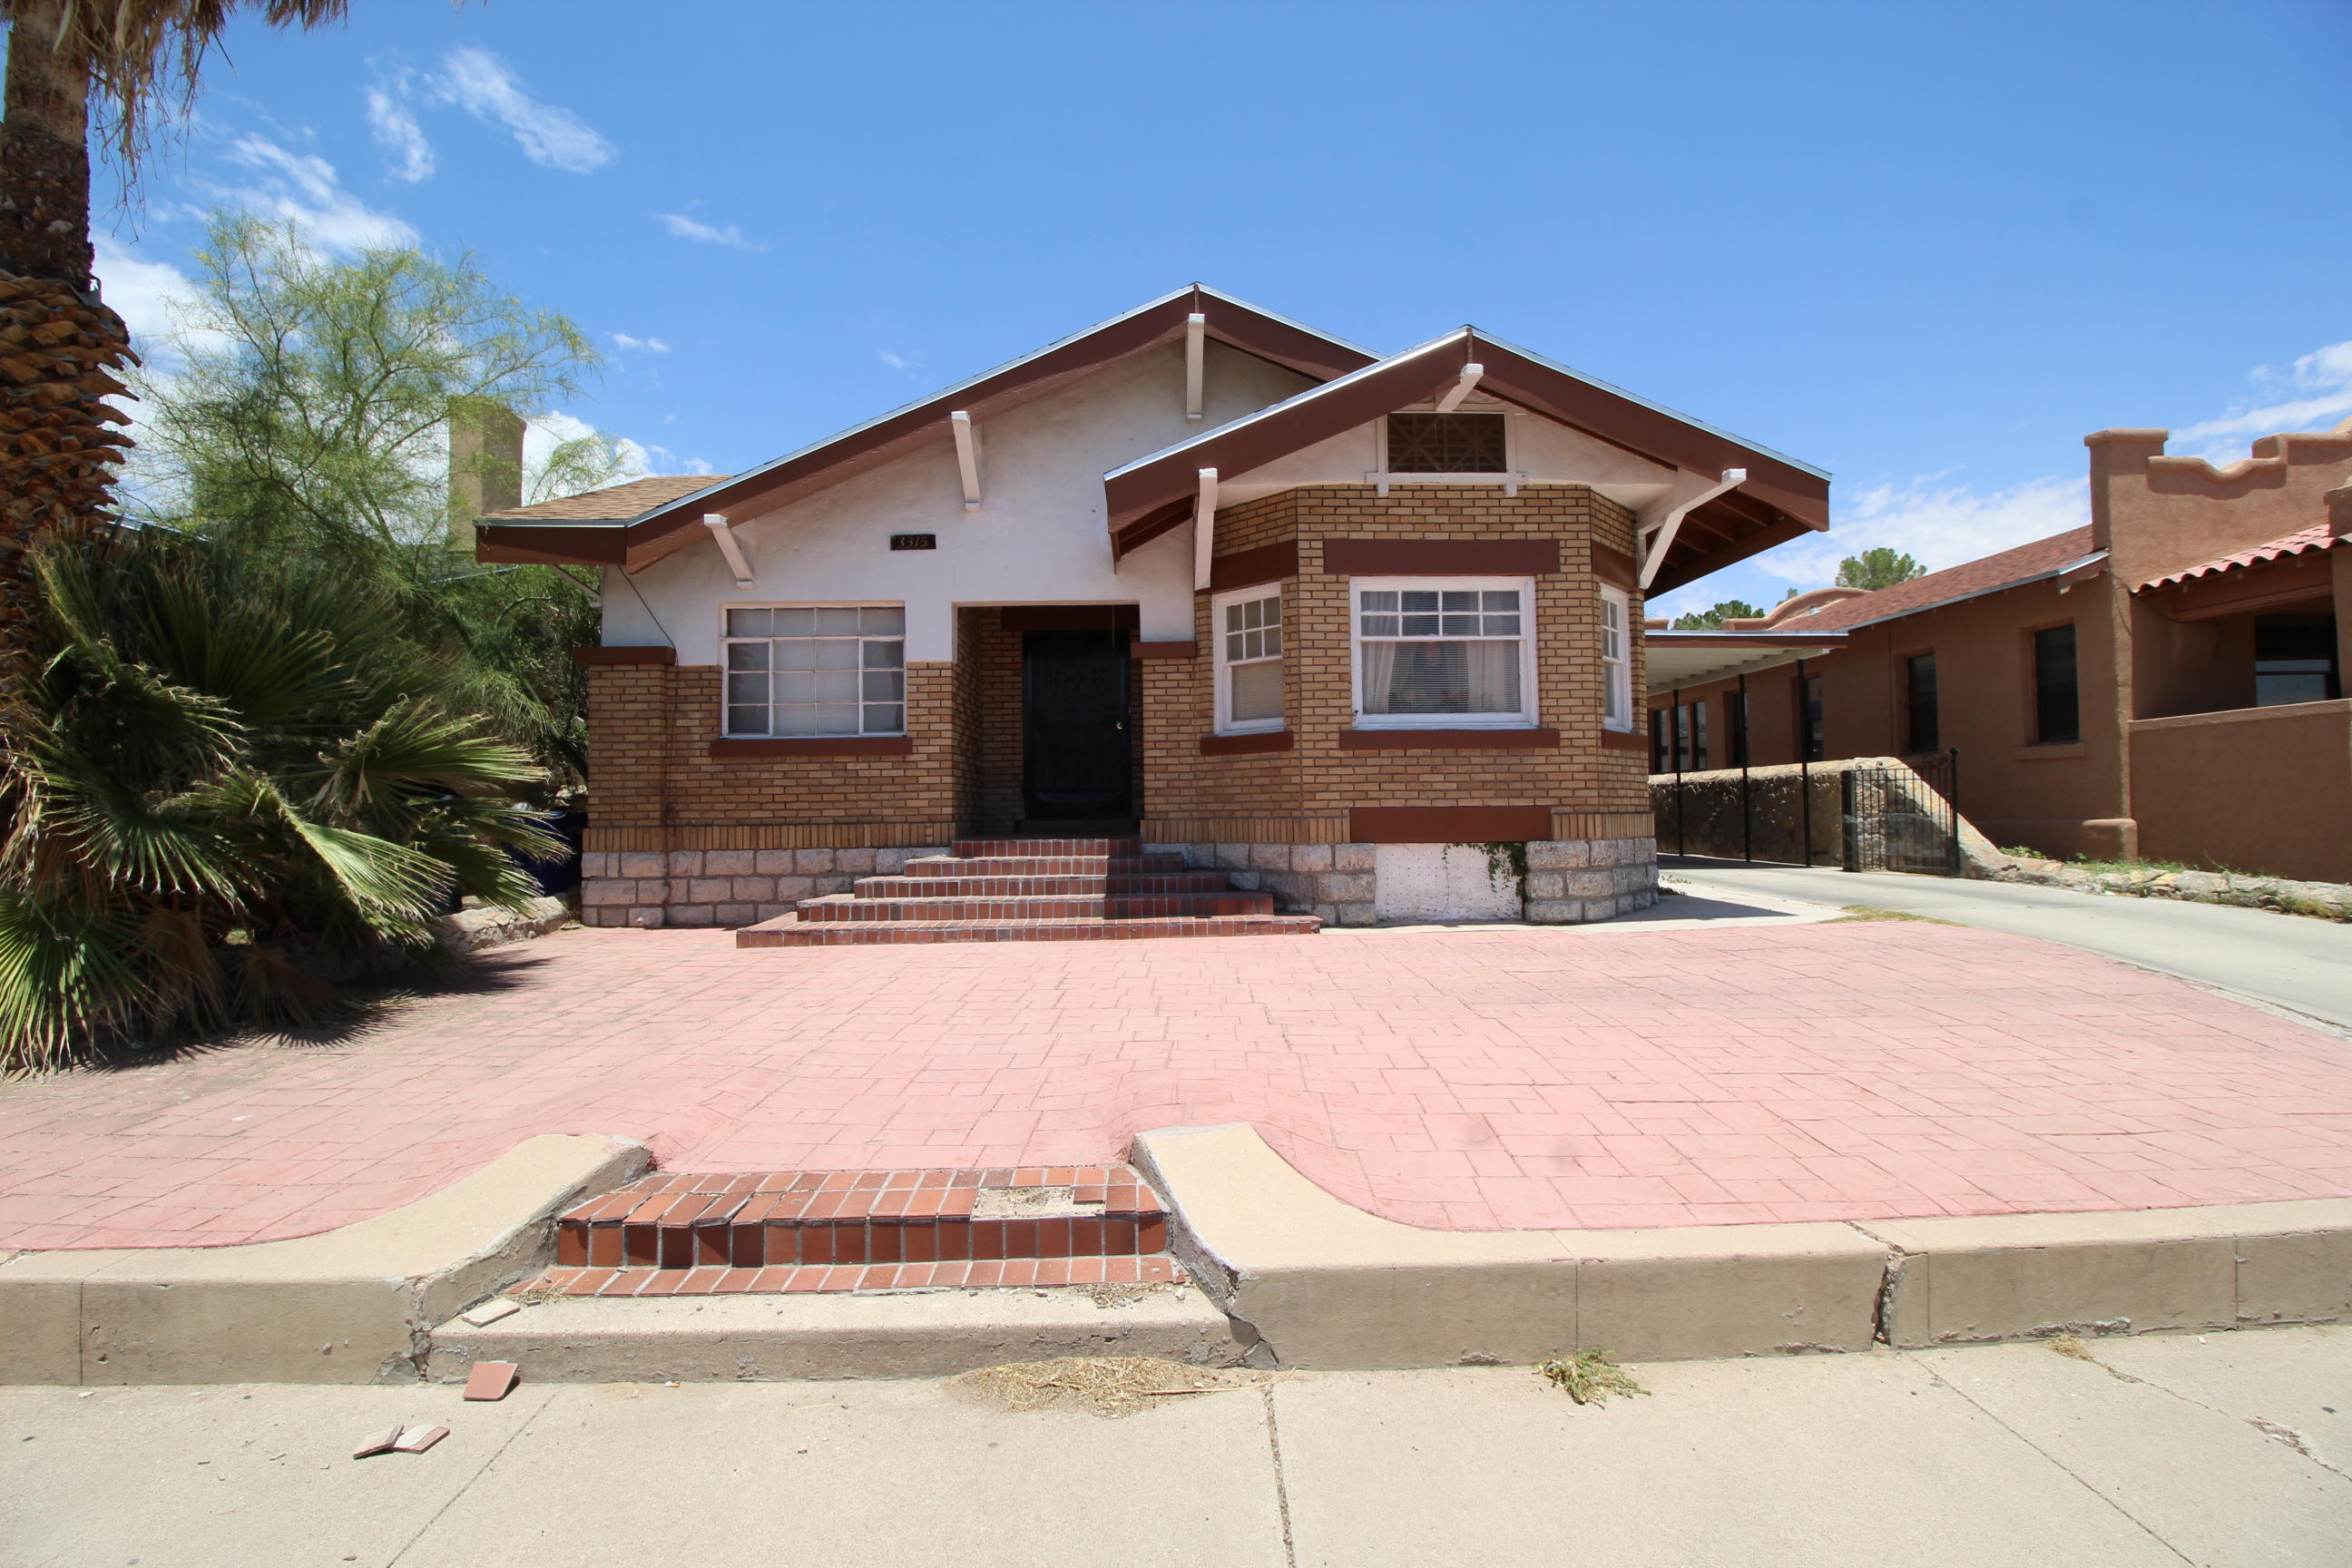 3315 MONTANA, El Paso, Texas 79903, 3 Bedrooms Bedrooms, ,15 BathroomsBathrooms,Residential,For sale,MONTANA,811393